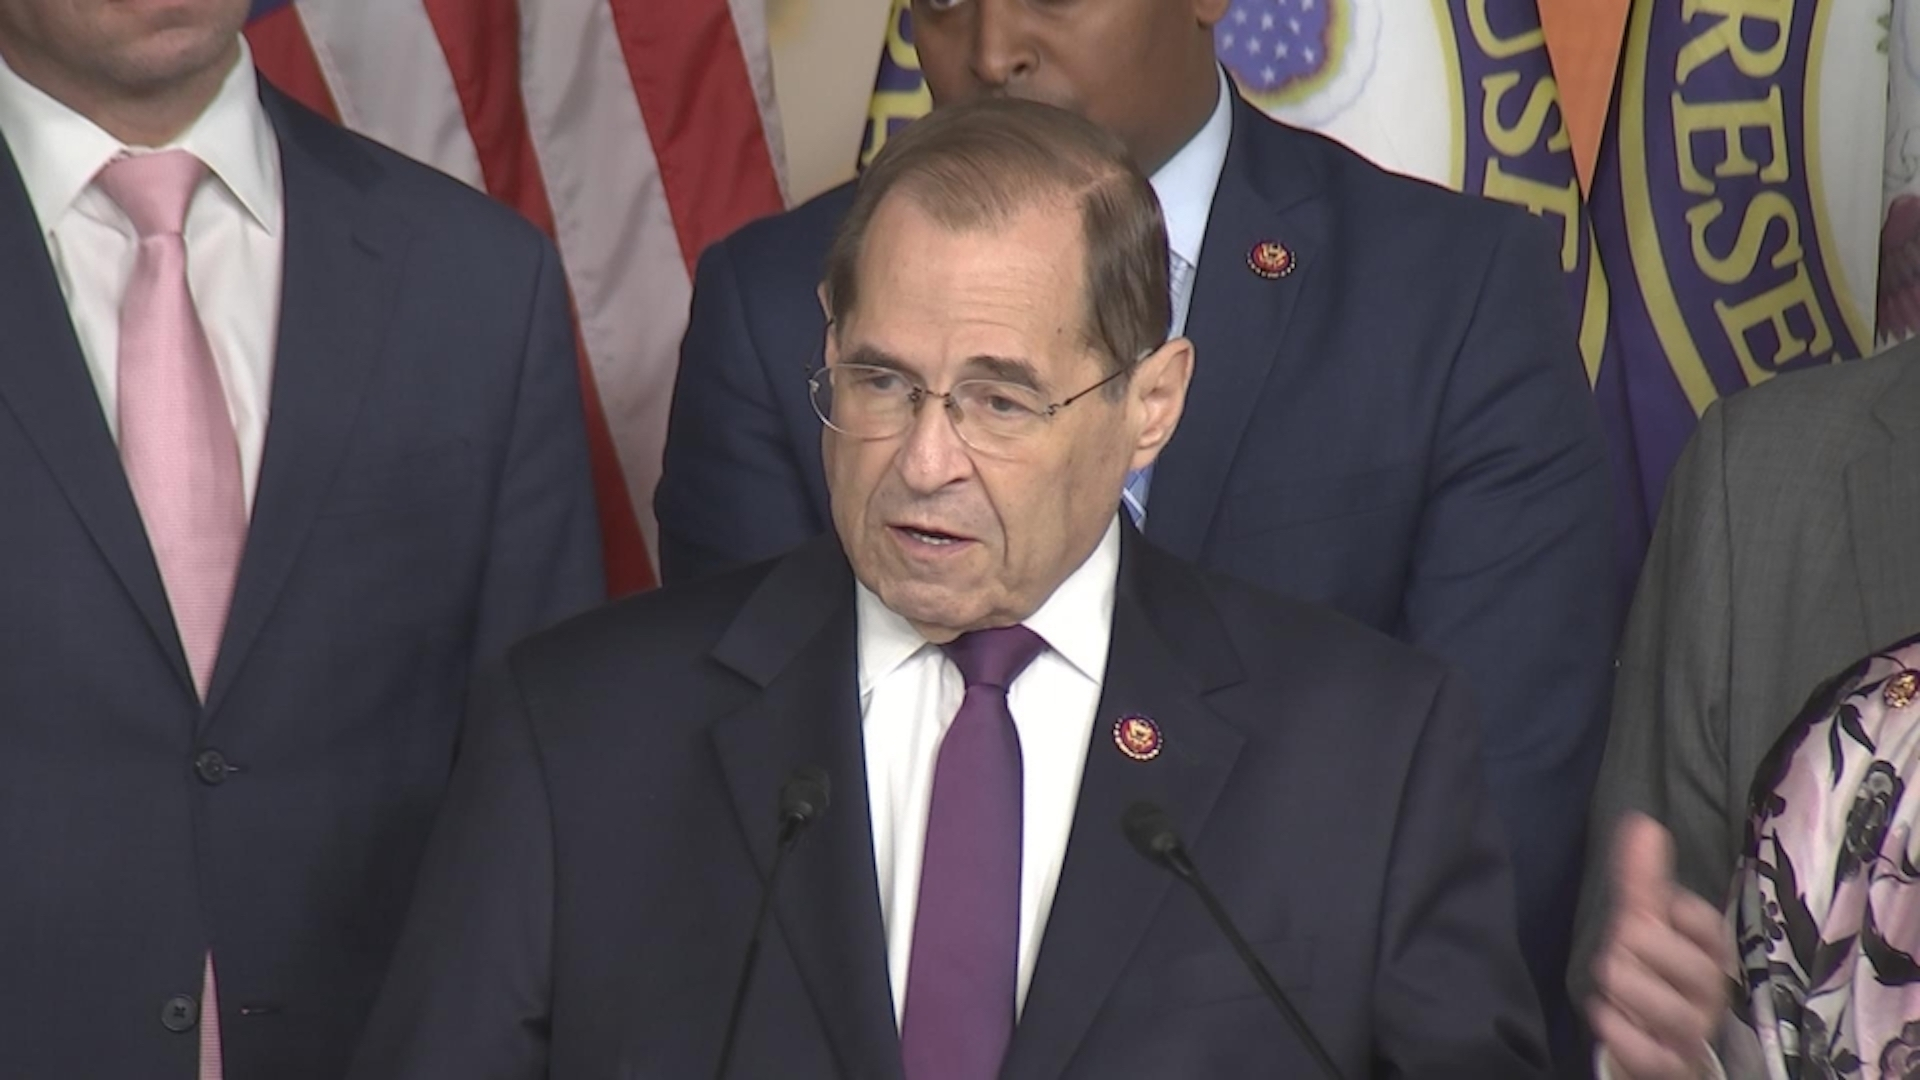 House Judiciary considers Trump impeachment after Mueller